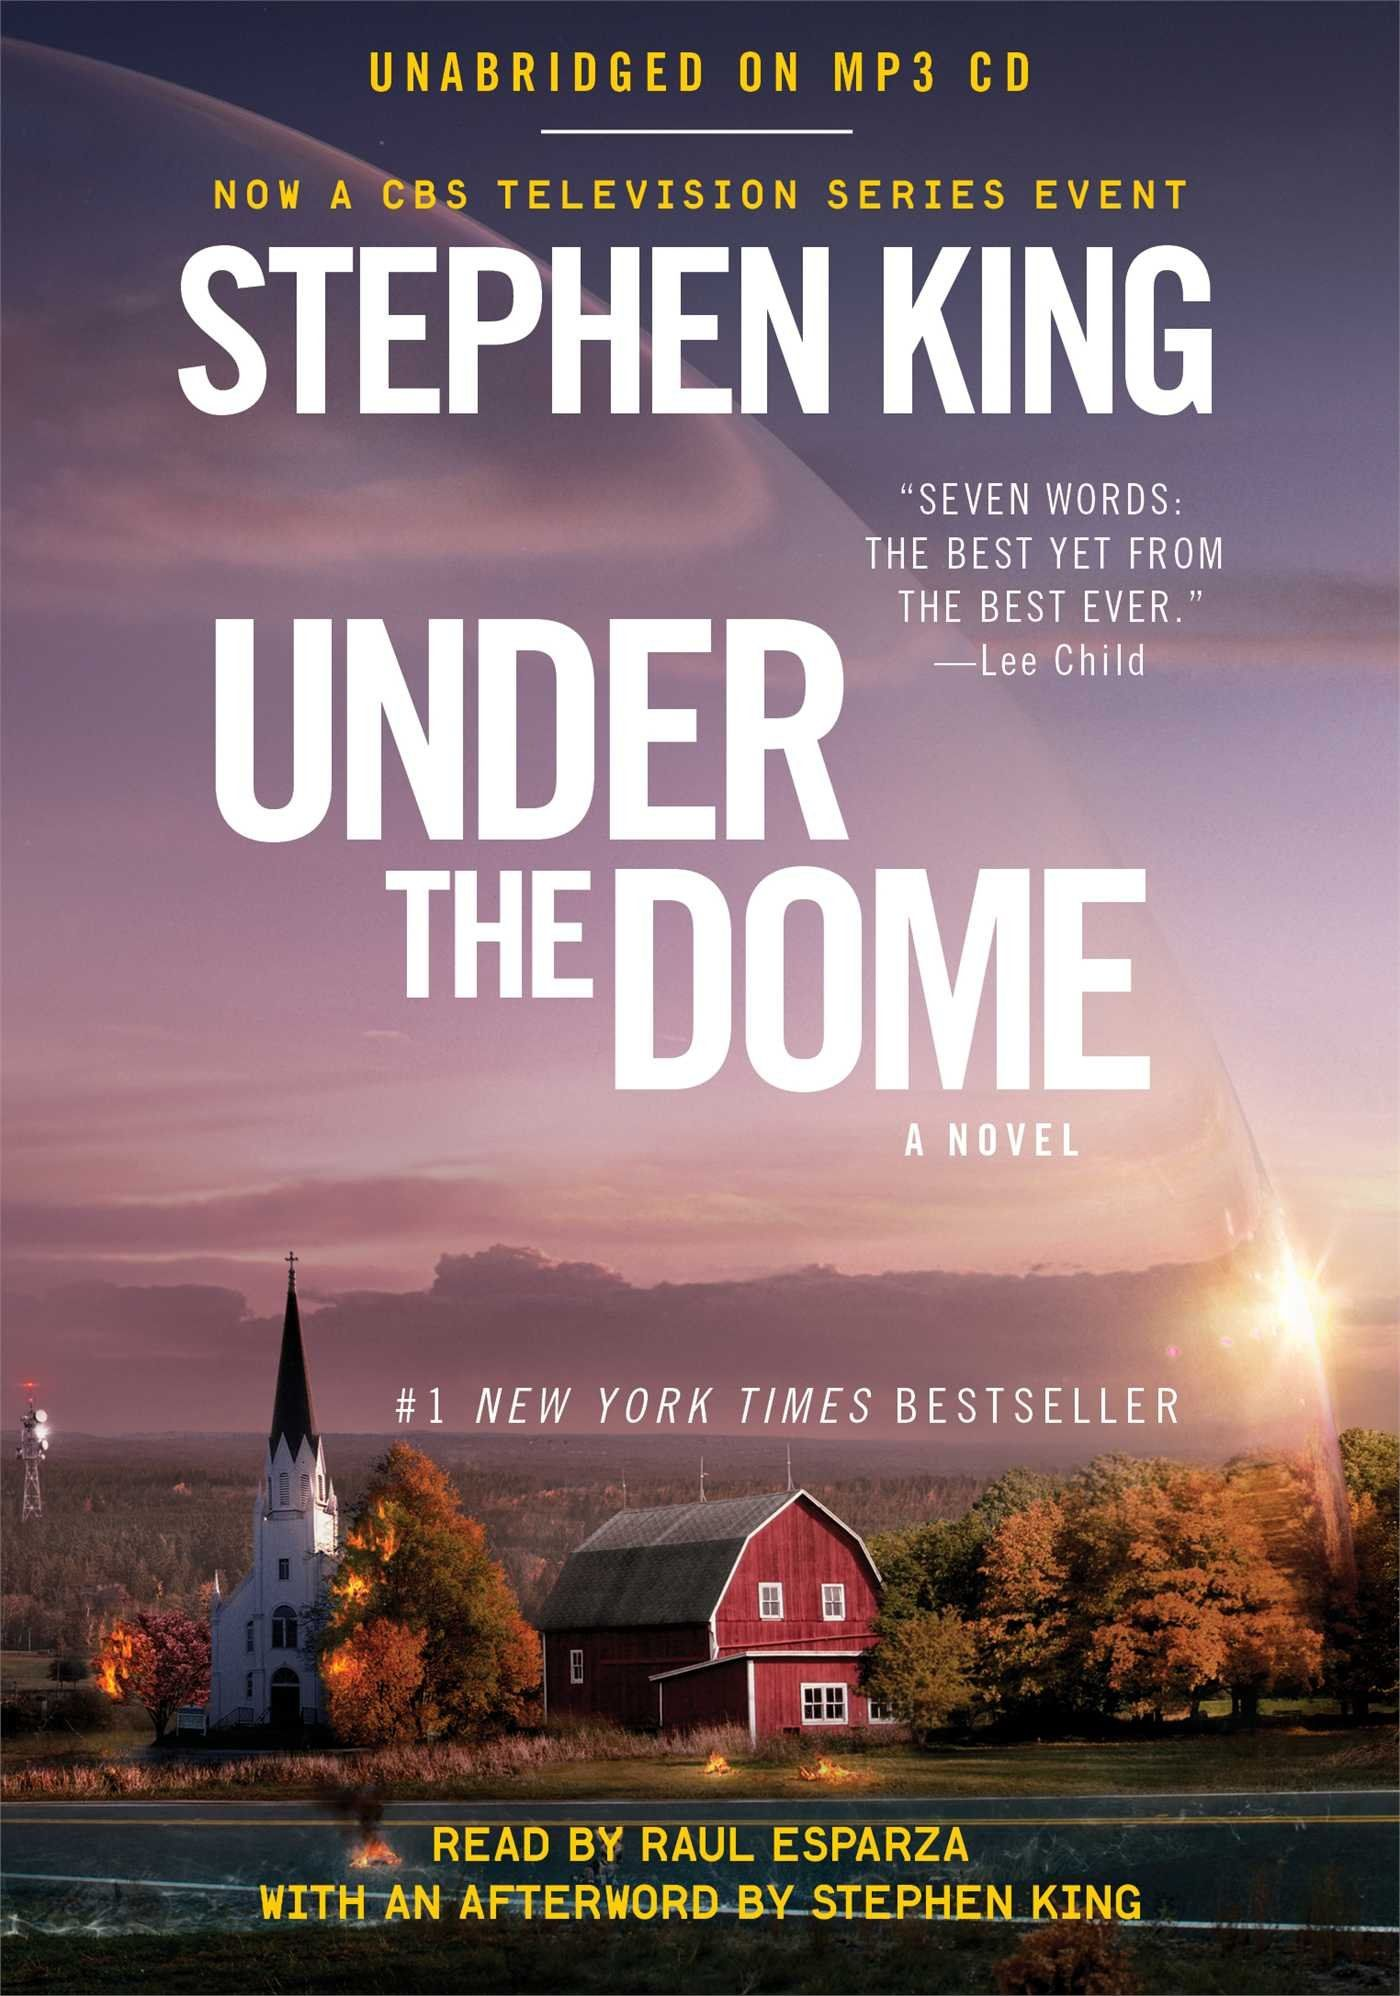 the dome book review